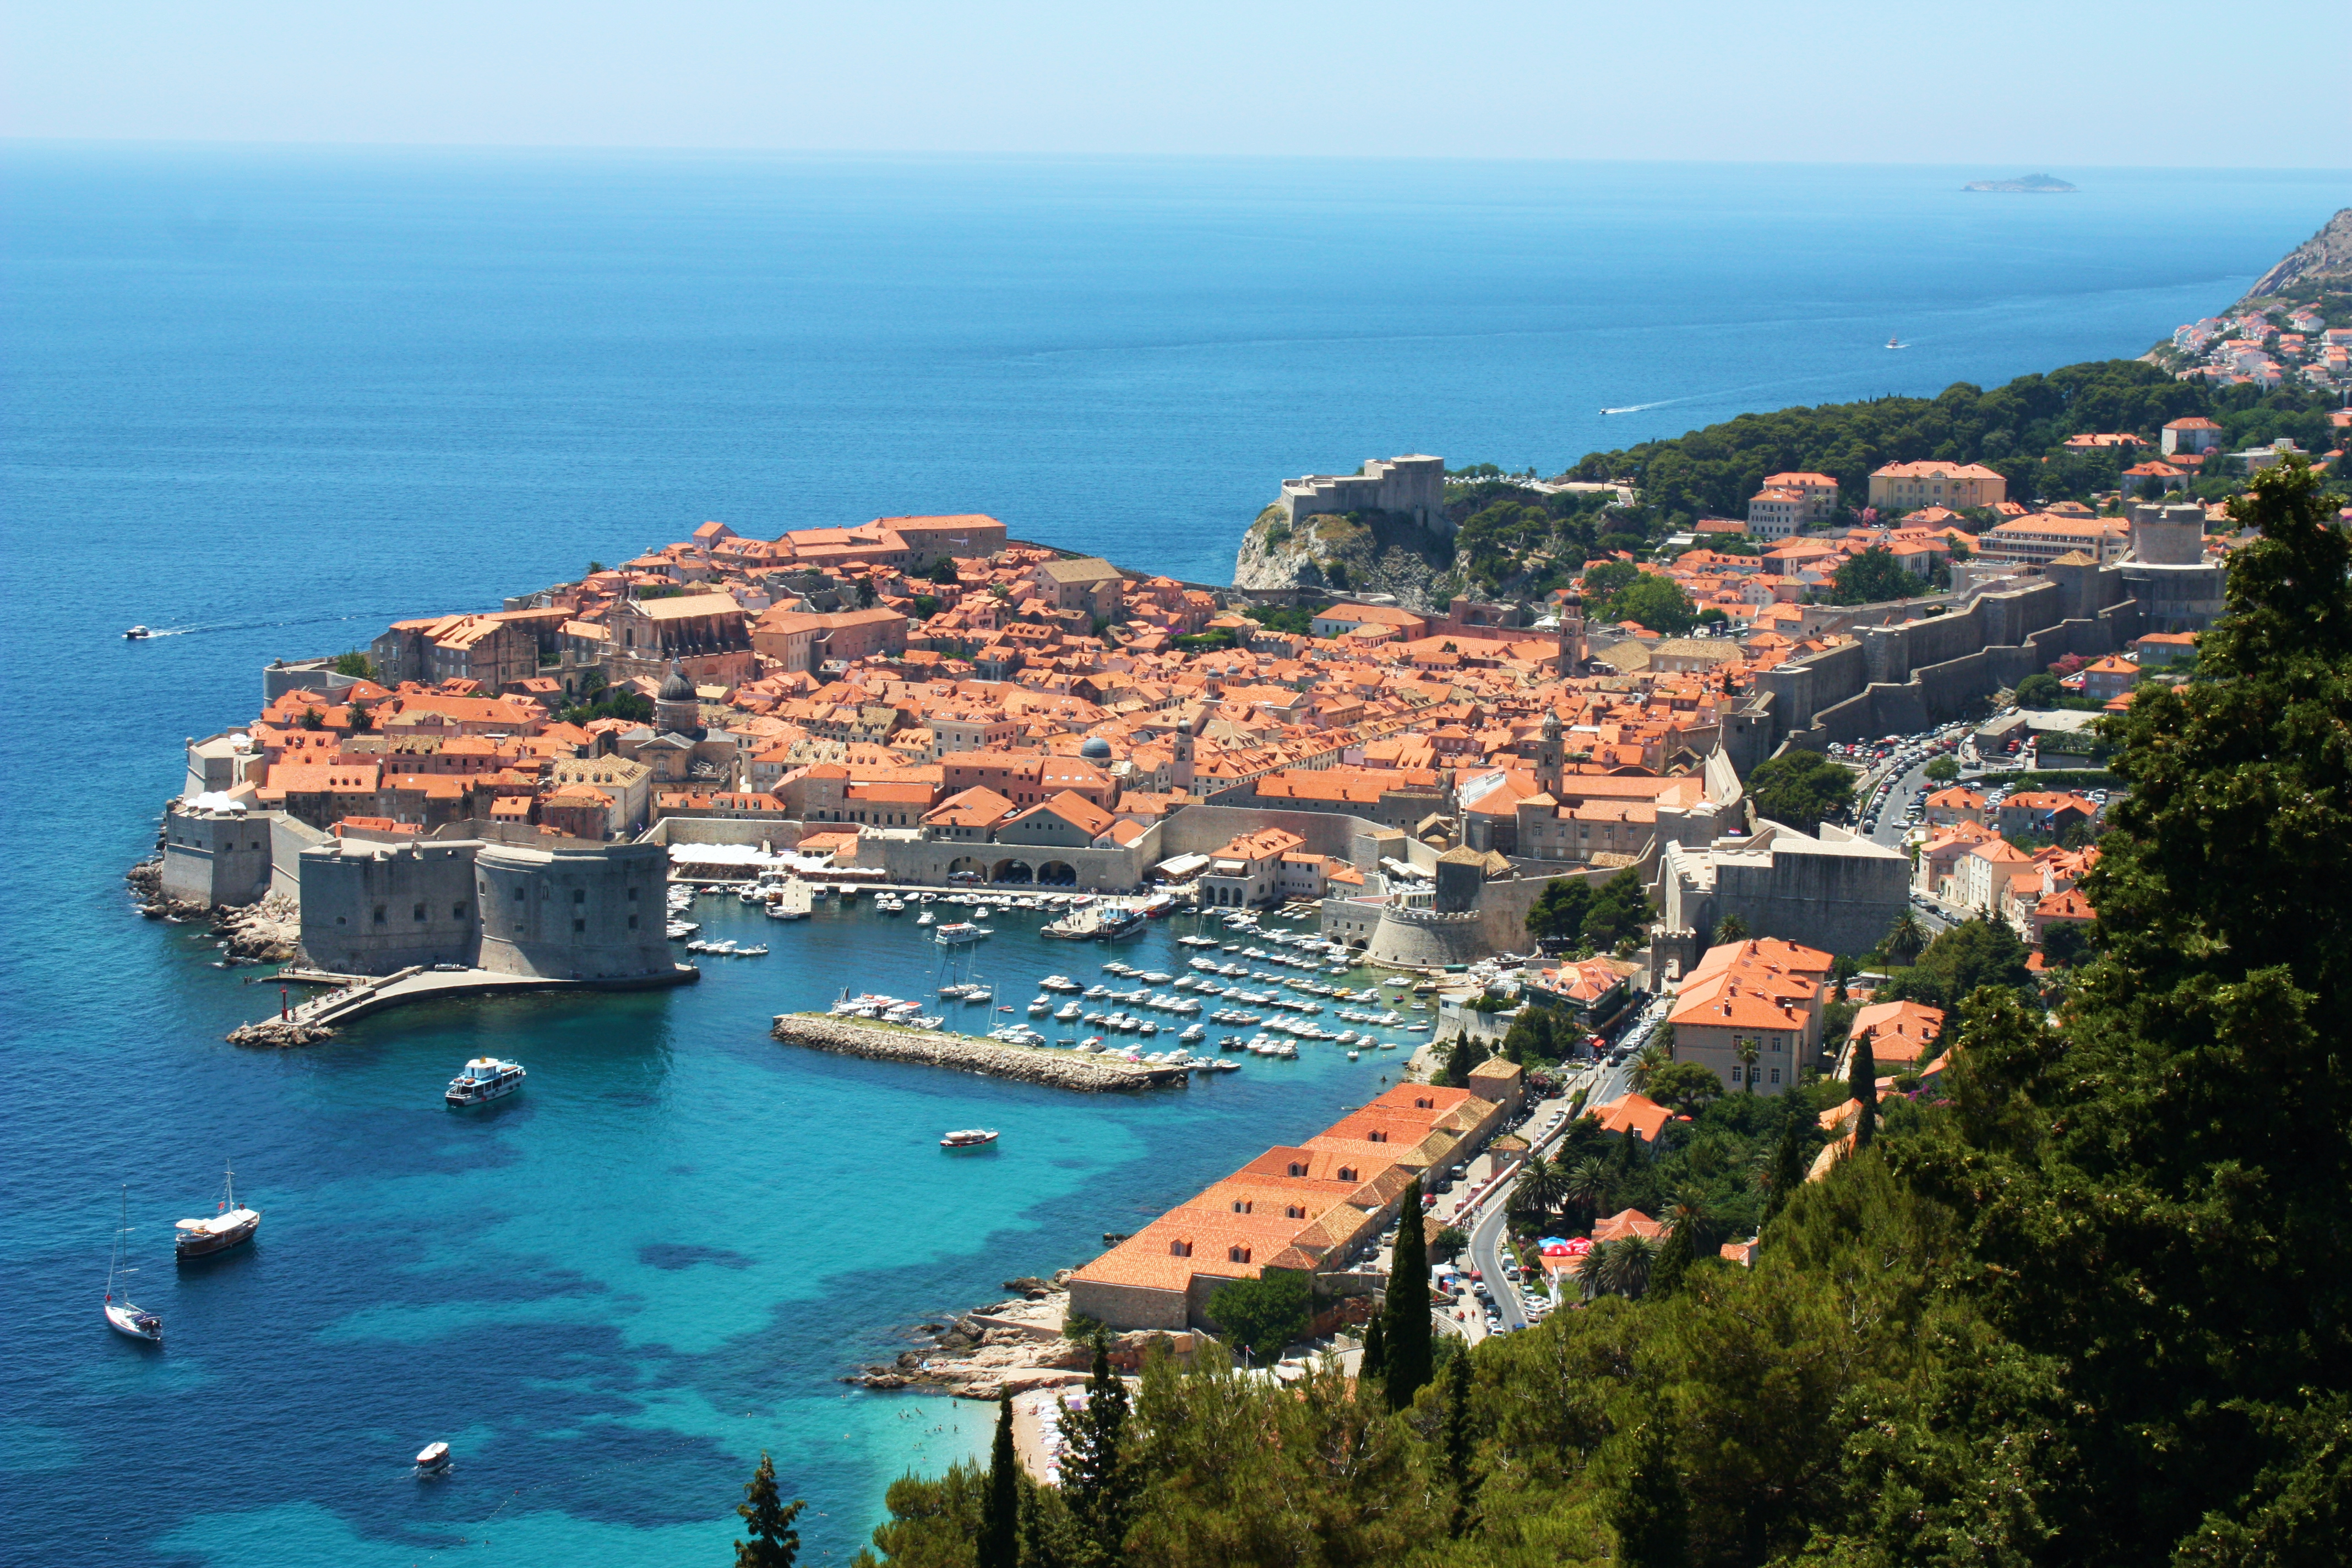 File:Dubrovnik june 2011..JPG - Wikimedia Commons